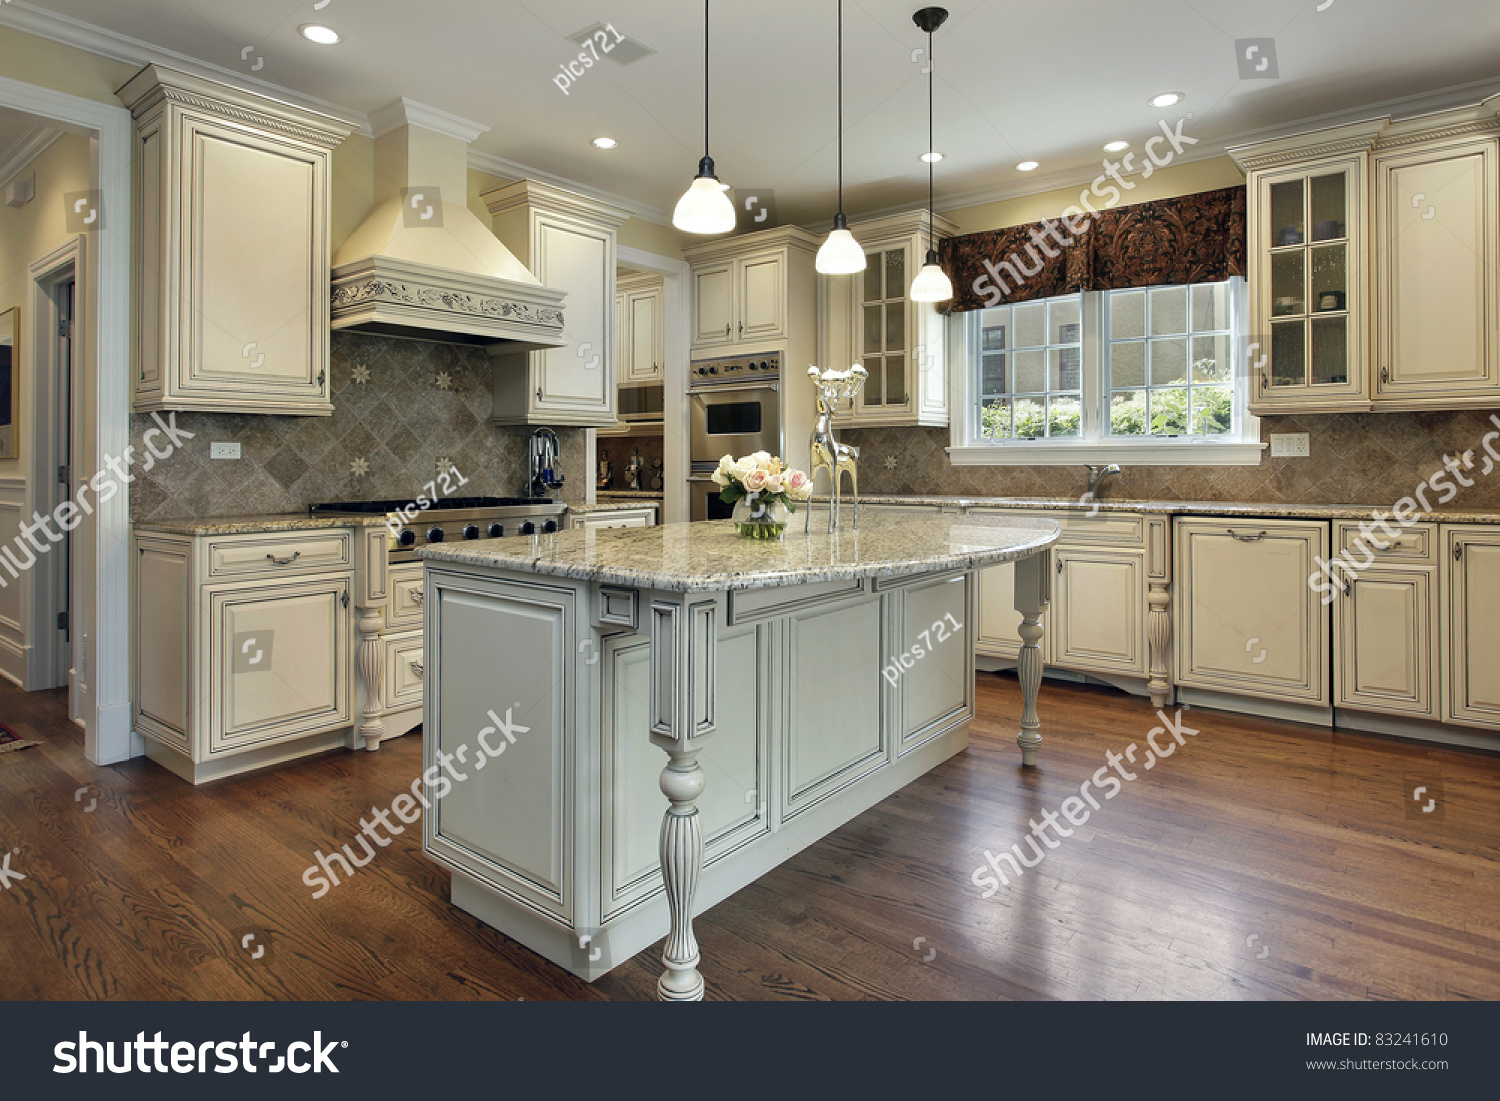 Granite Island Kitchen Kitchen In Luxury Home With Large Granite Island Stock Photo